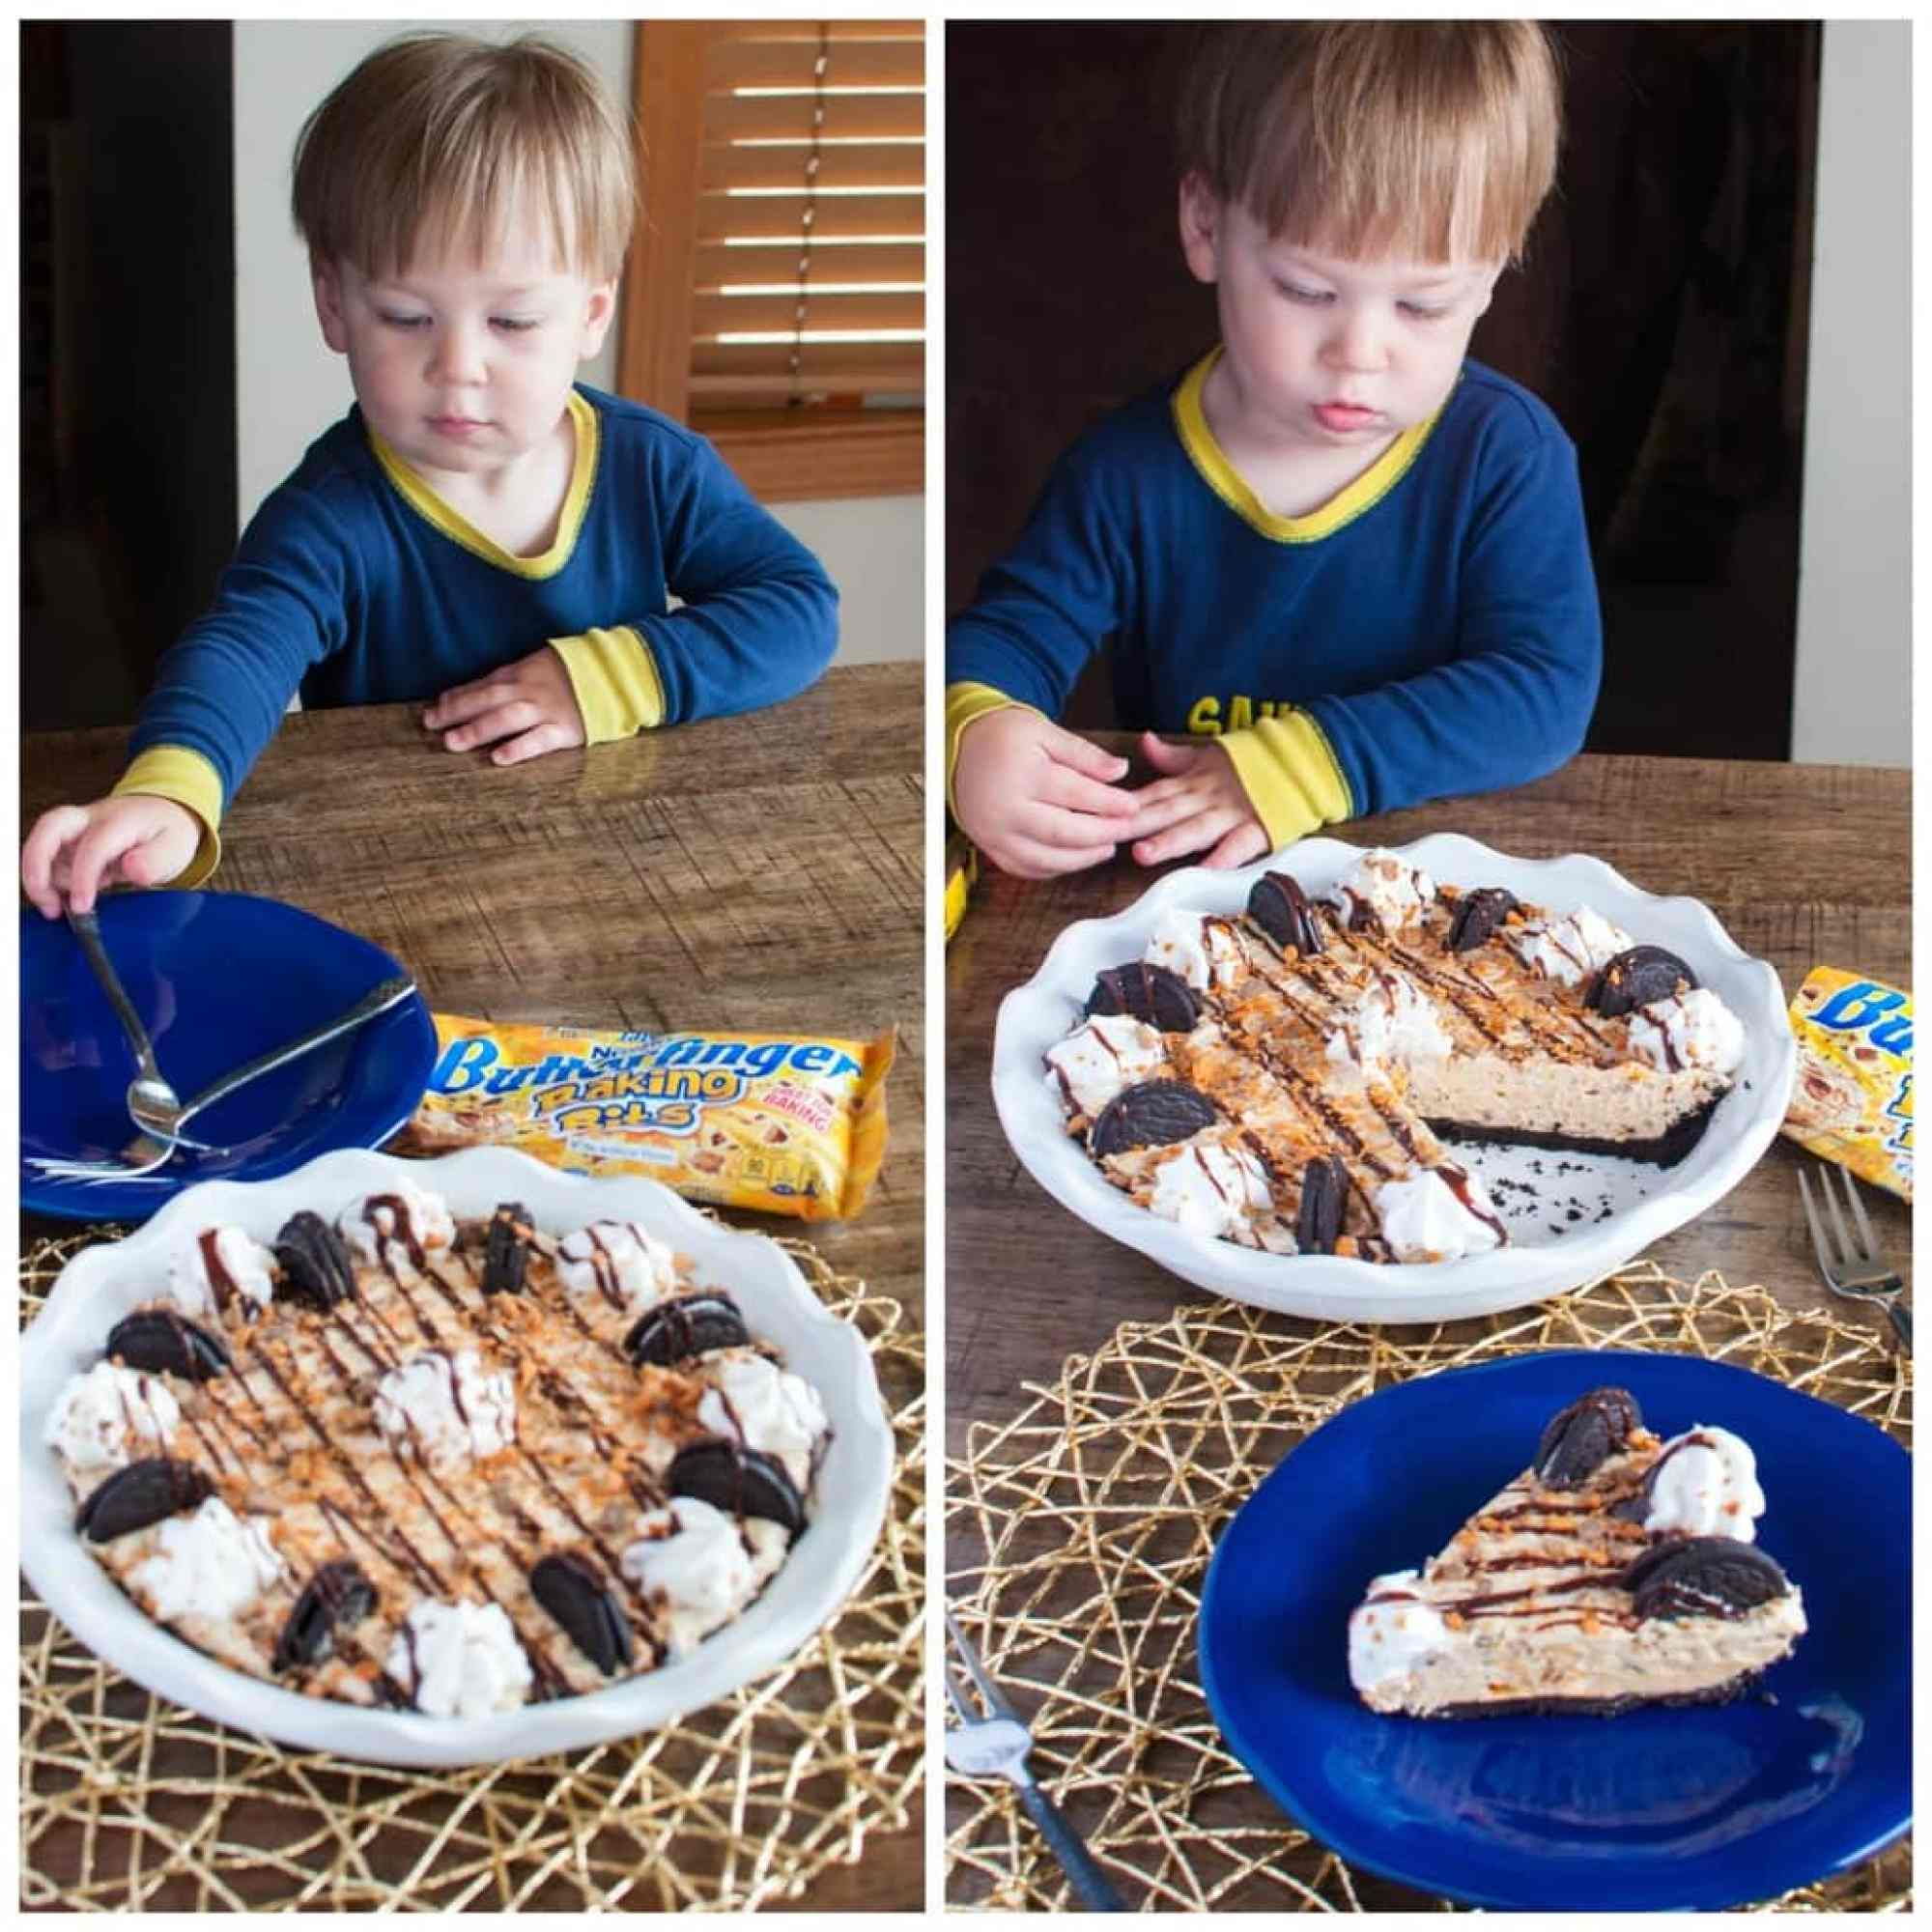 Even babies can't resist this no bake pie!